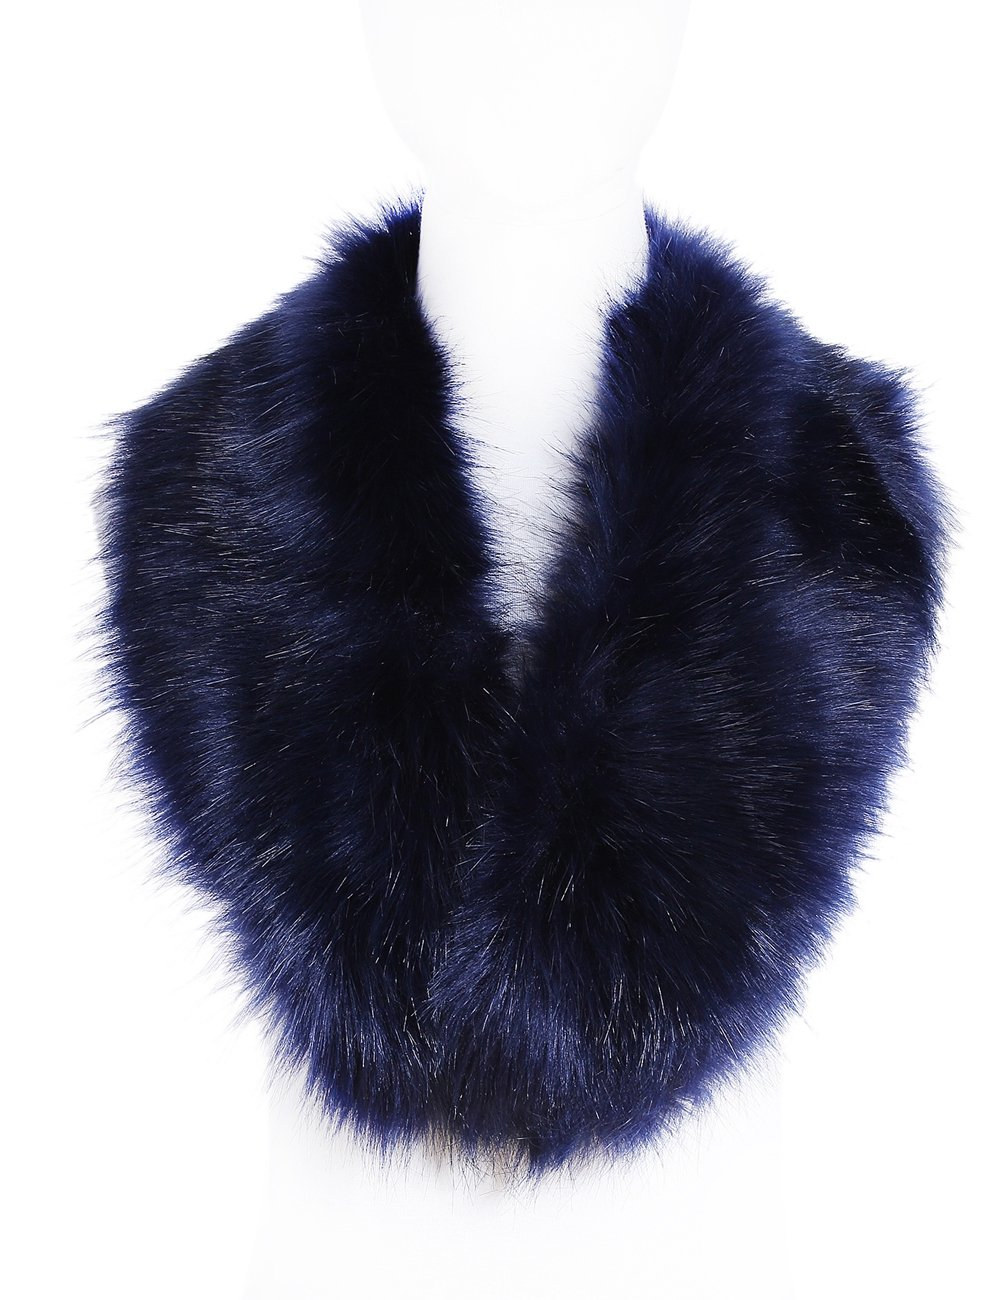 Soul Young Faux Fur Collar Women's Neck Warmer Scarf Wrap,Navy,One Size